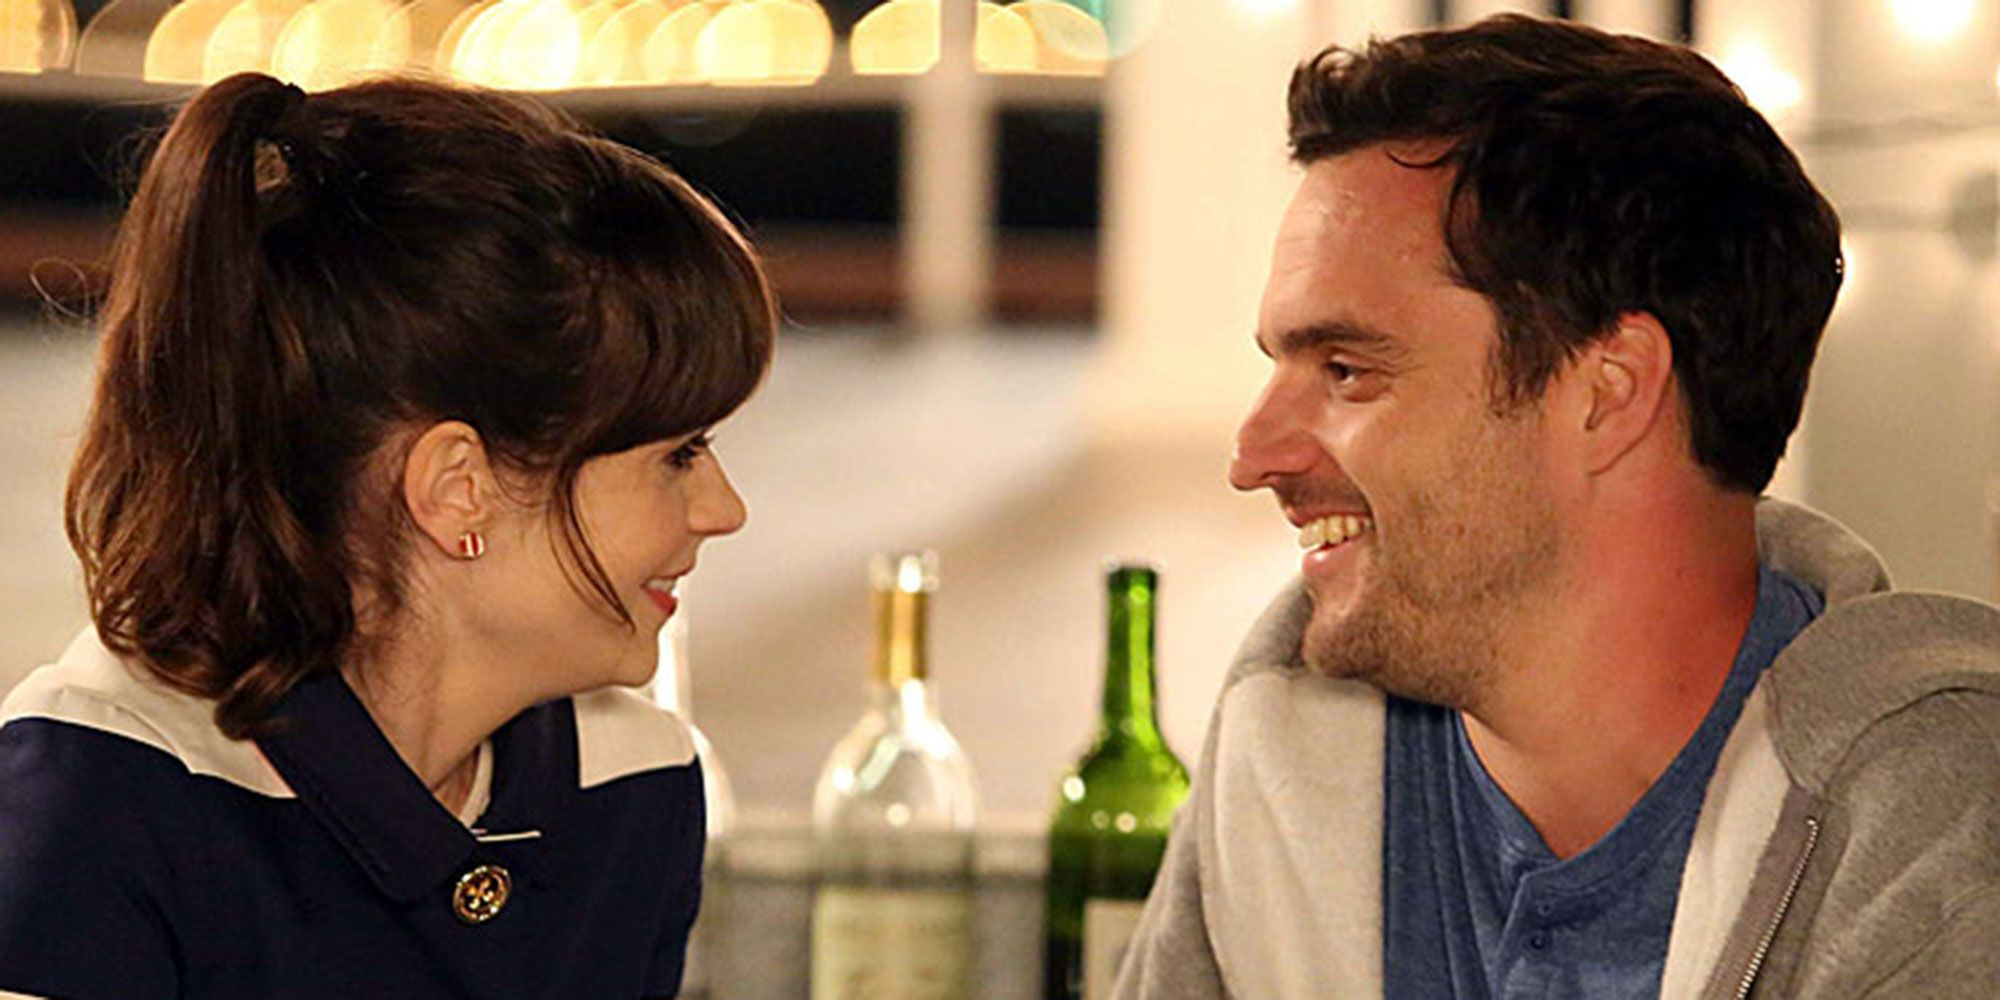 Jess and Nick in New Girl